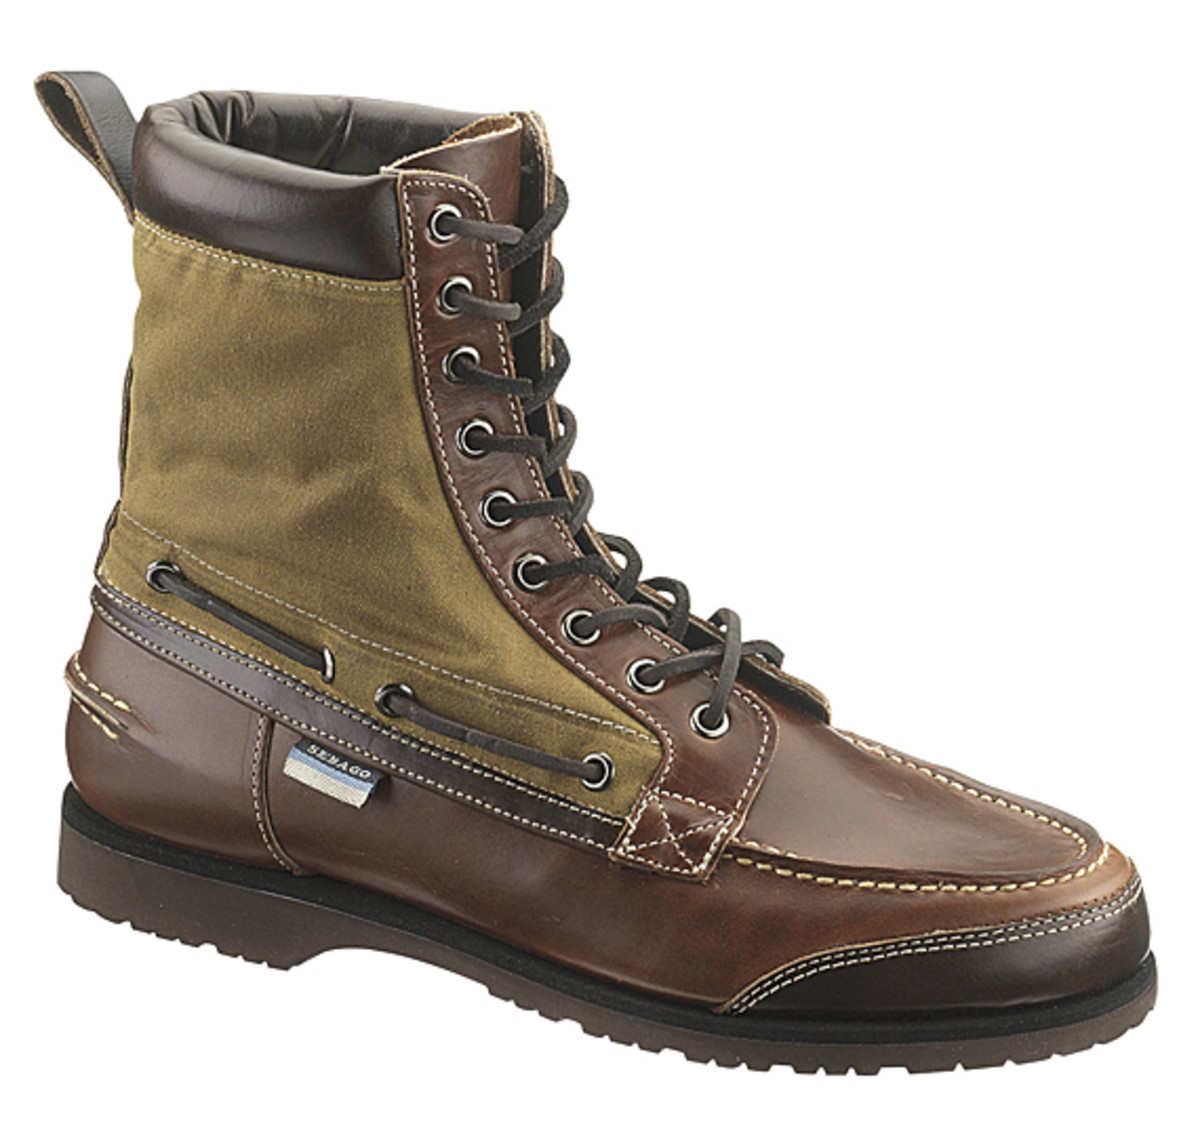 filson-sebago-capsule-collection-osmore-boots-01